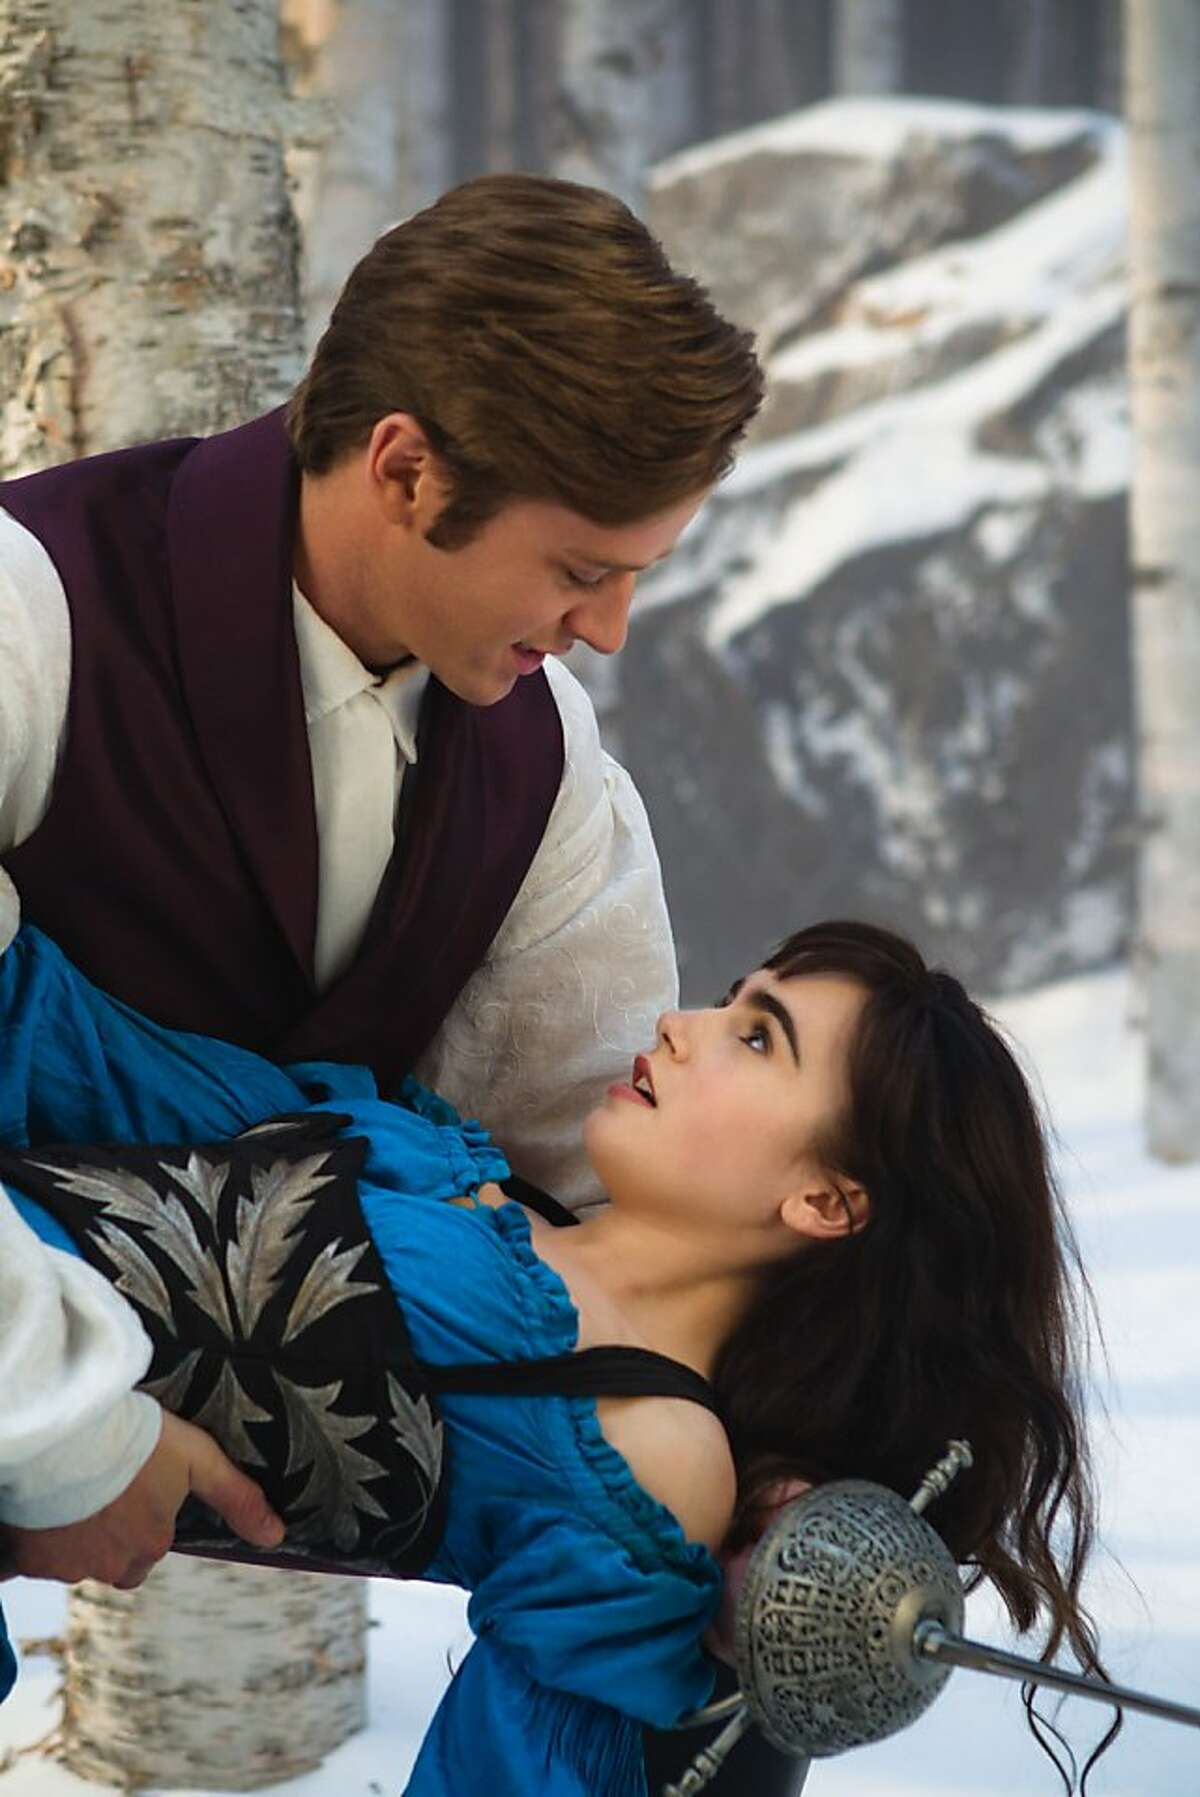 """In this film image released by Relativity Media, Armie Hammer and Lily Collins are shown in a scene from, """"Mirror Mirror."""" (AP Photo/Relativity Media, Jan Thijs)"""